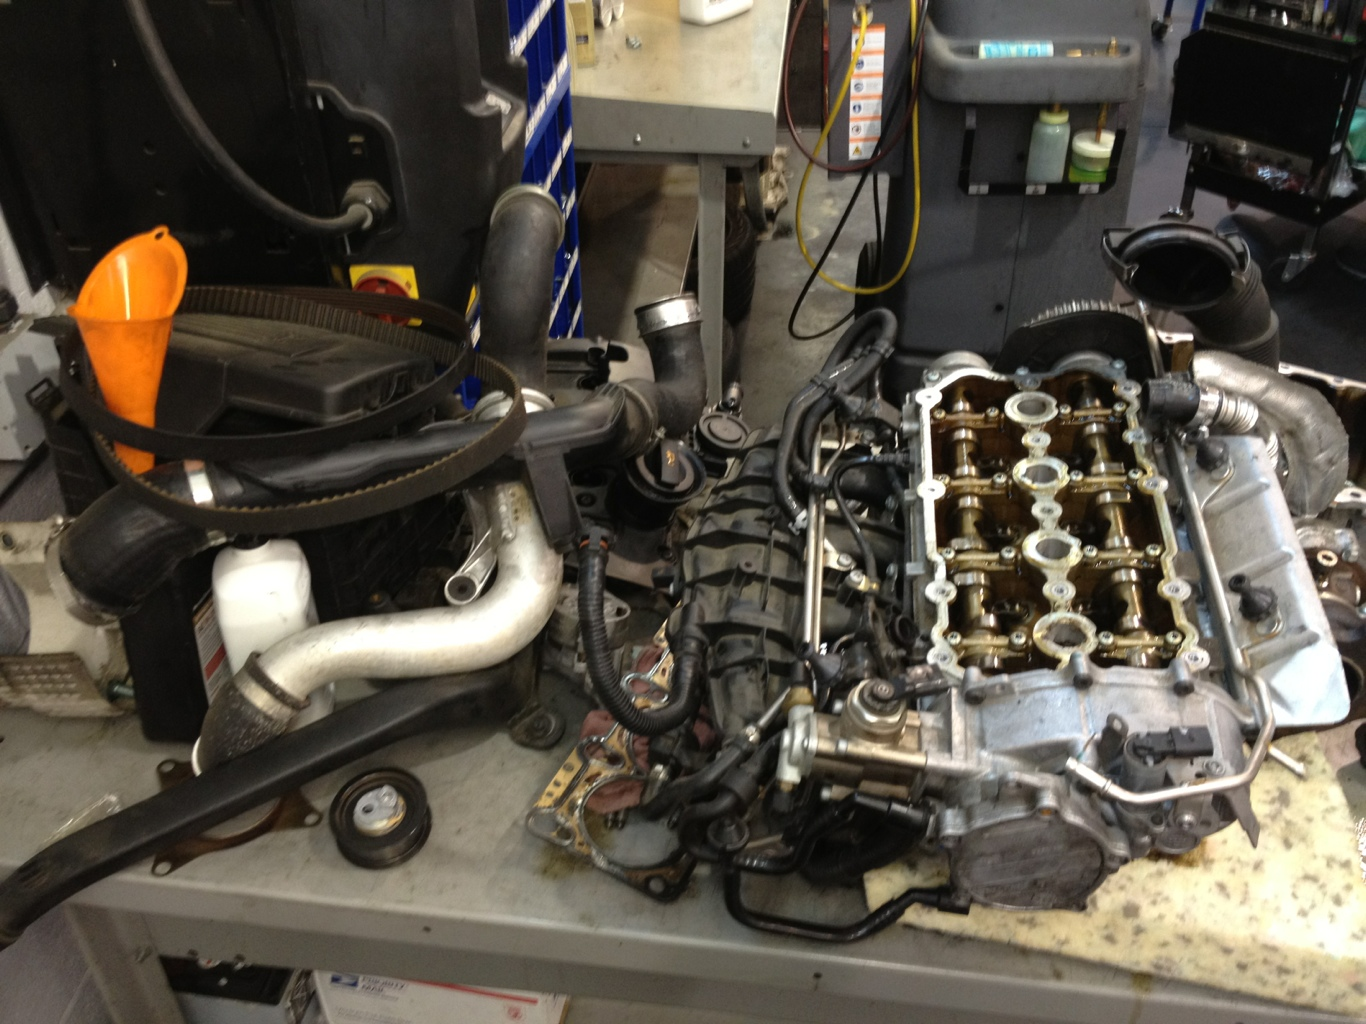 2.0t VW cylinder head removed due to oil consumption